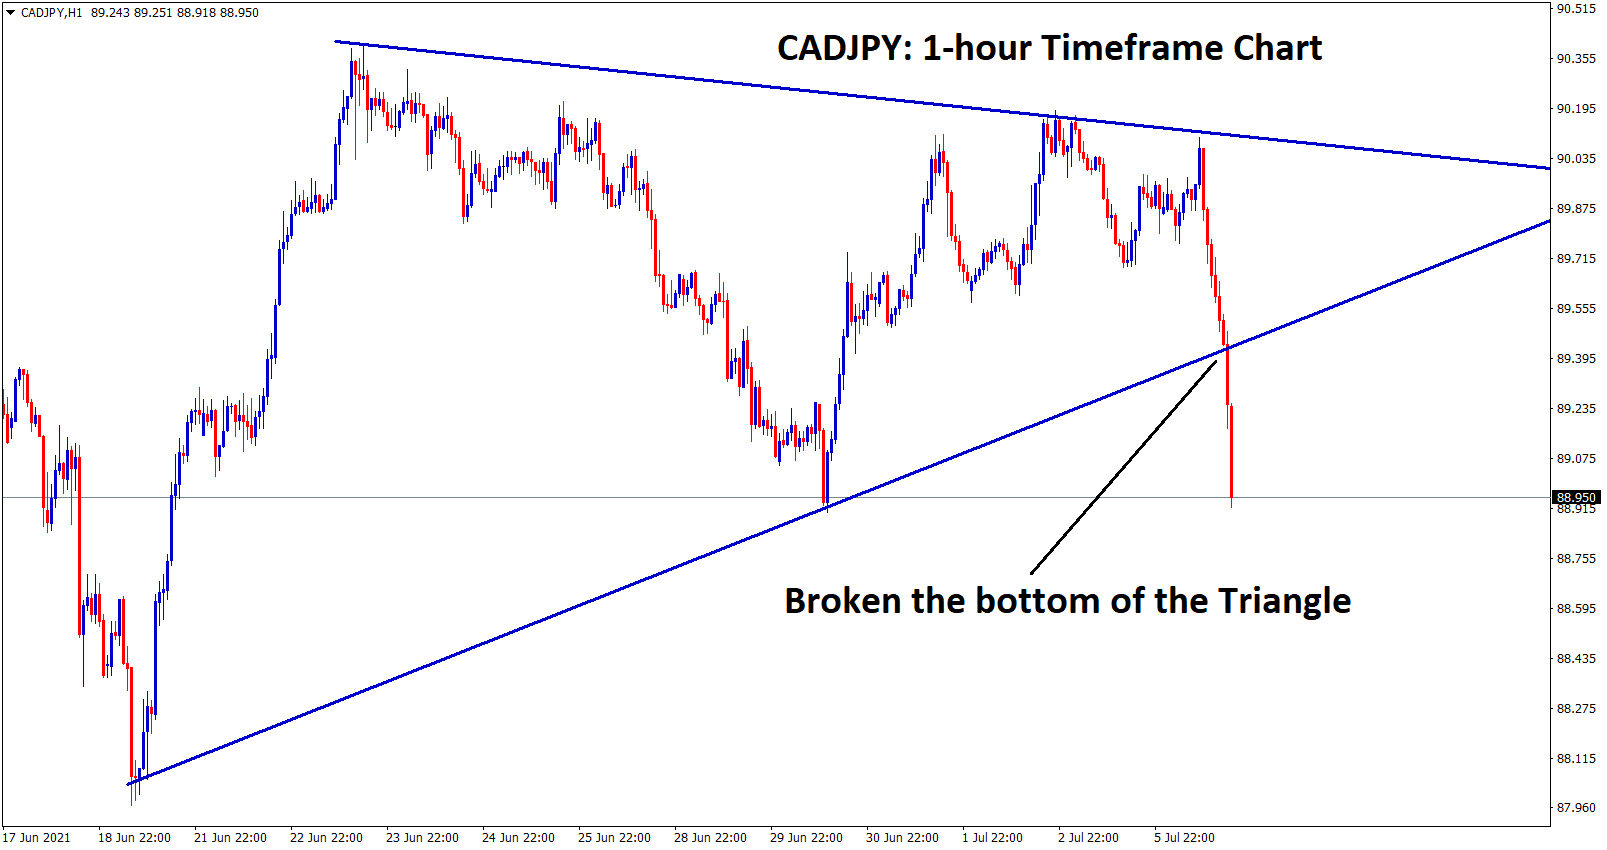 cadjpy has broken the bottom level of the Triangle in the 1 hour chart